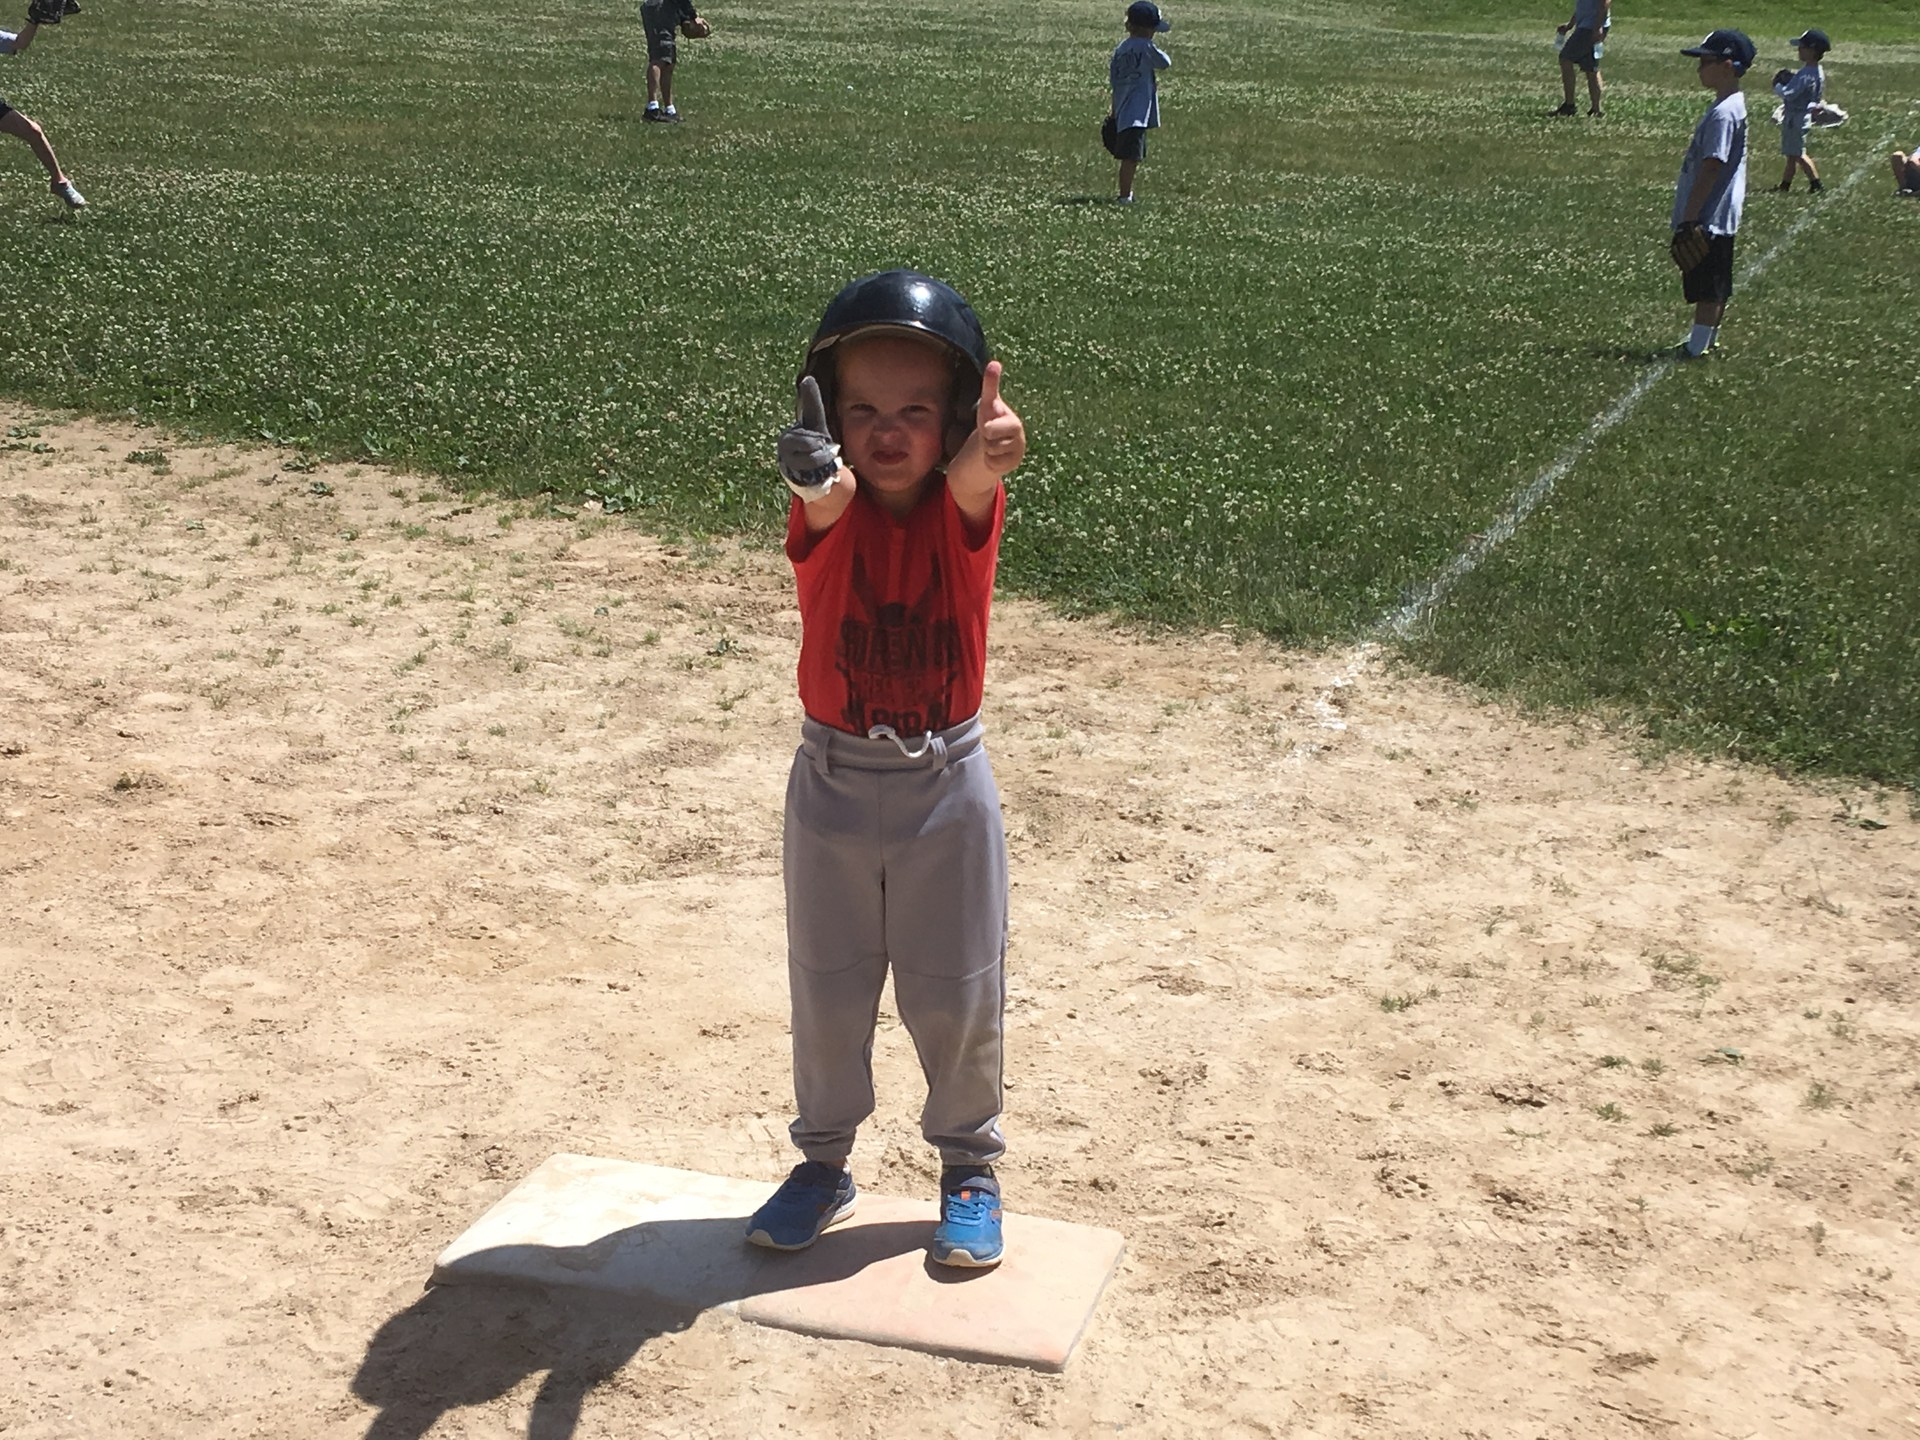 T-Ball player giving thumbs up